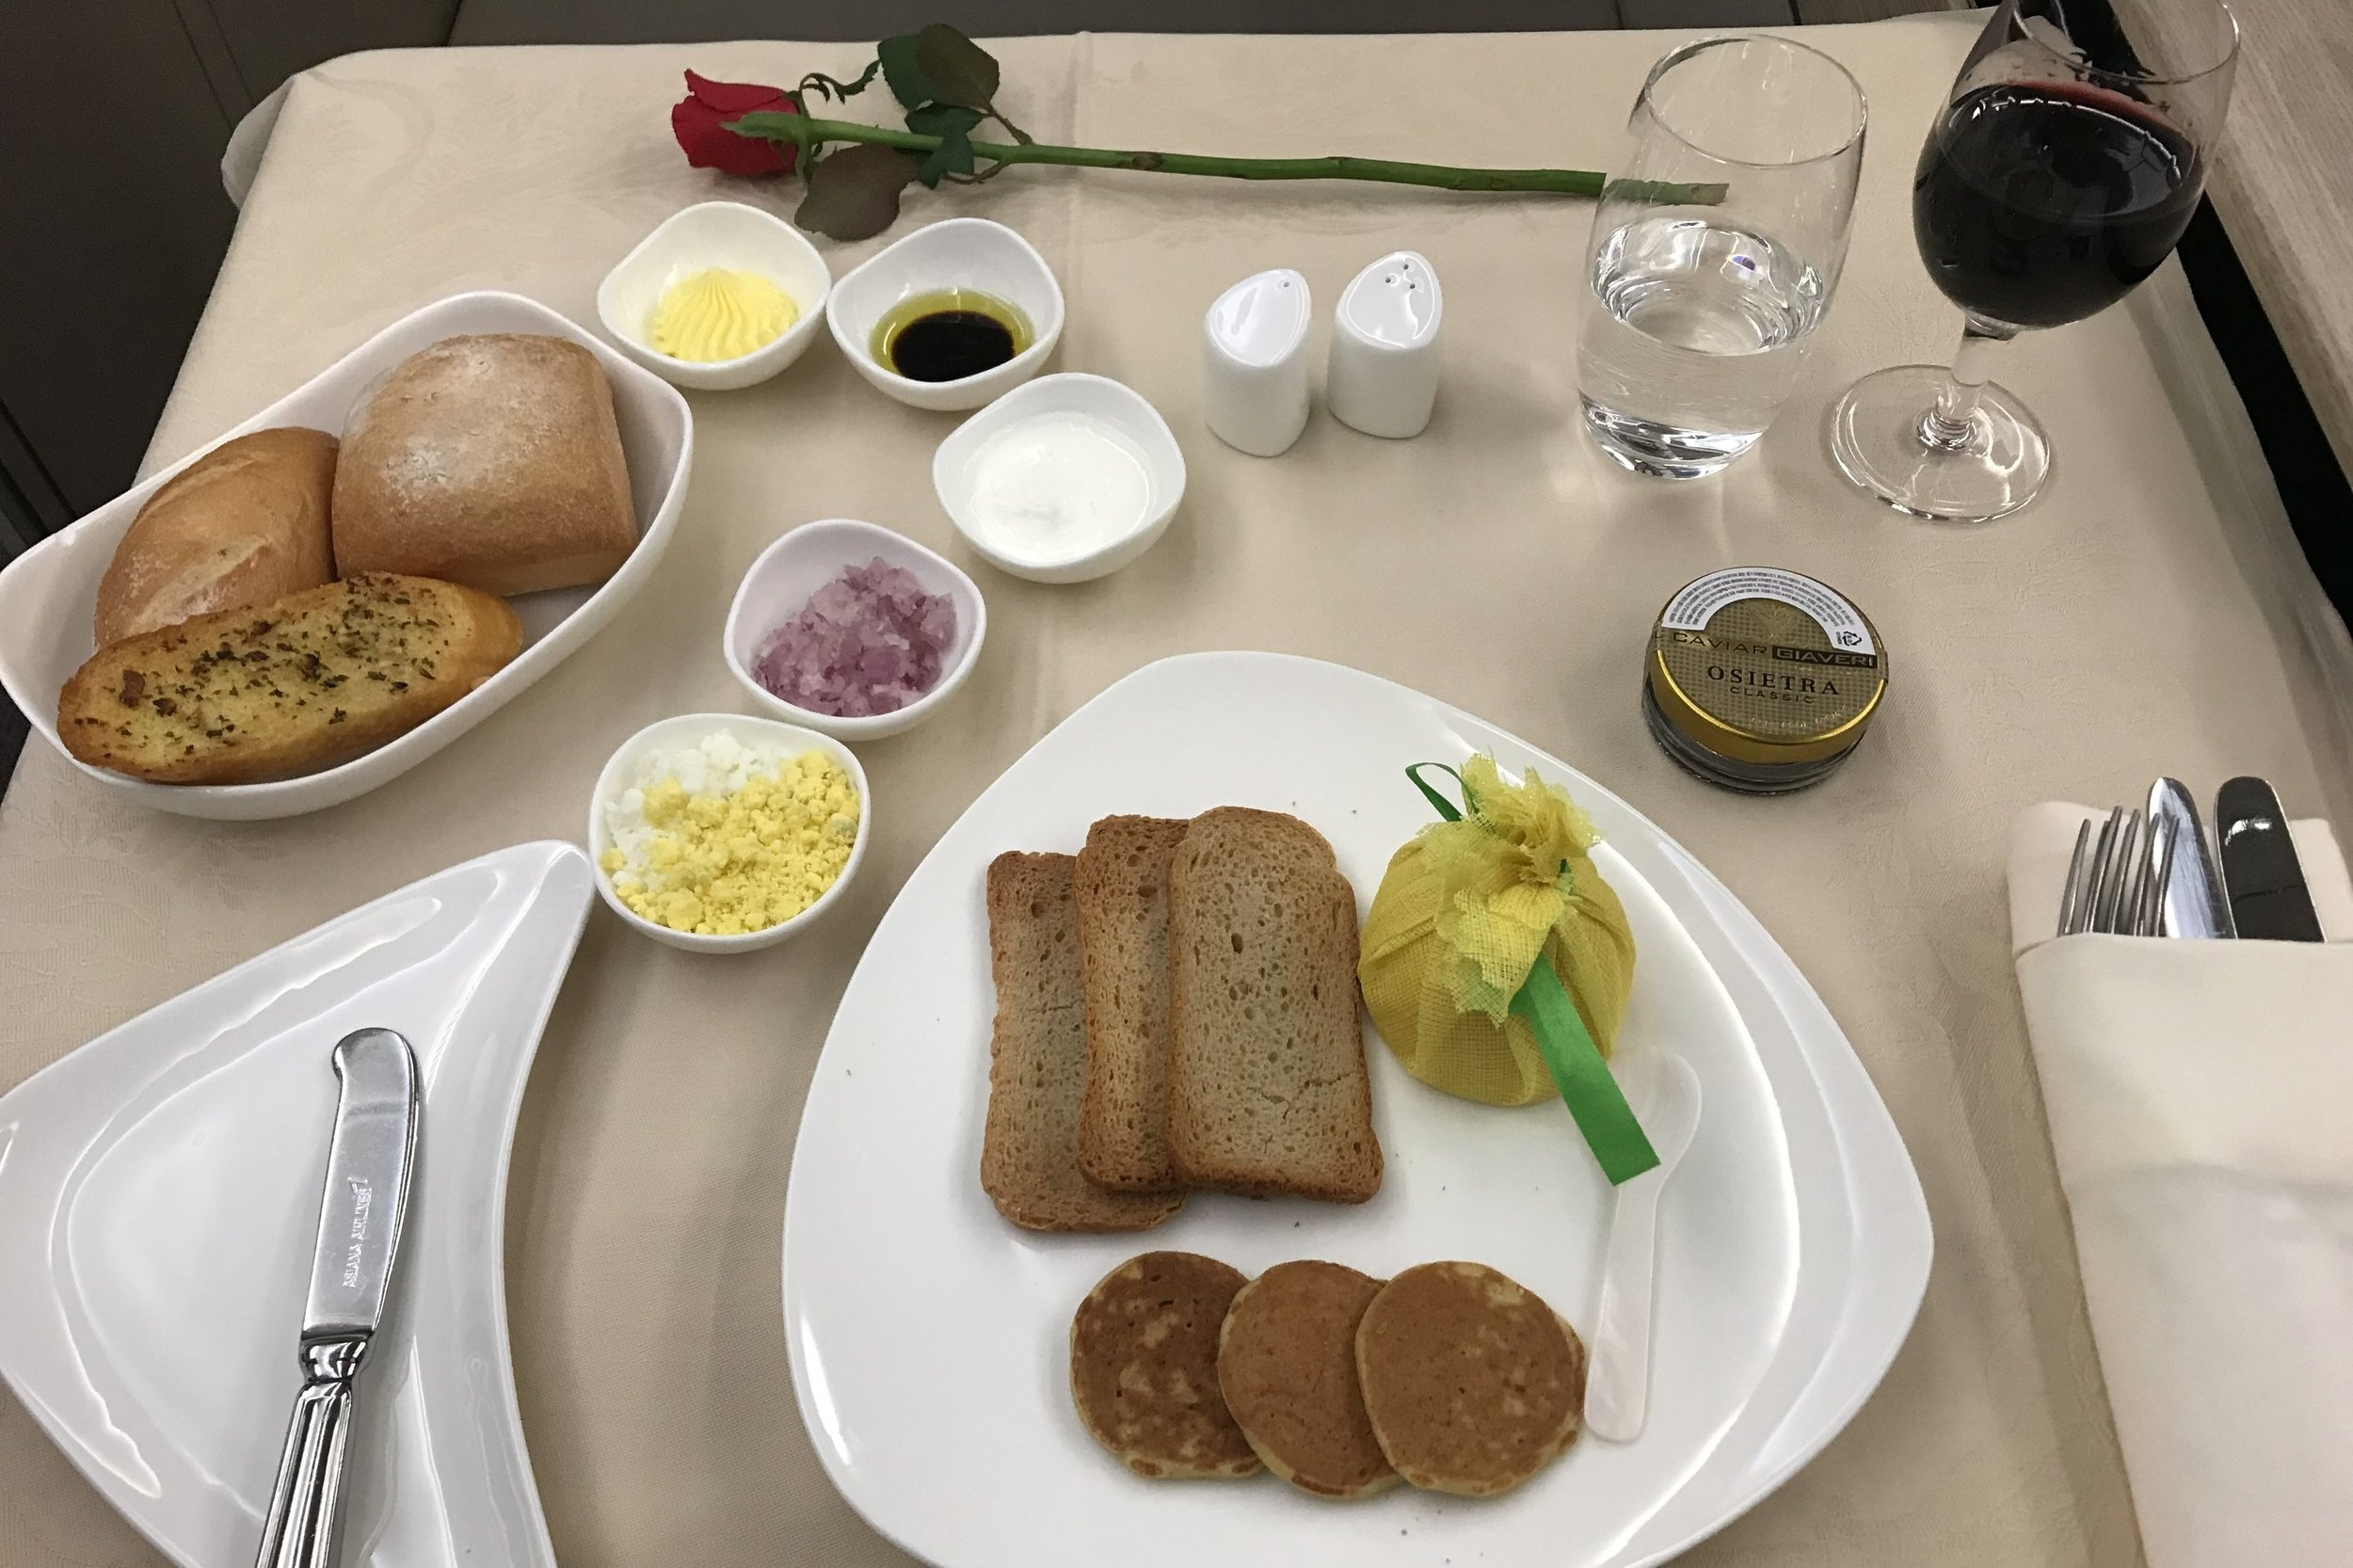 Asiana Airlines First Class – Caviar presentation